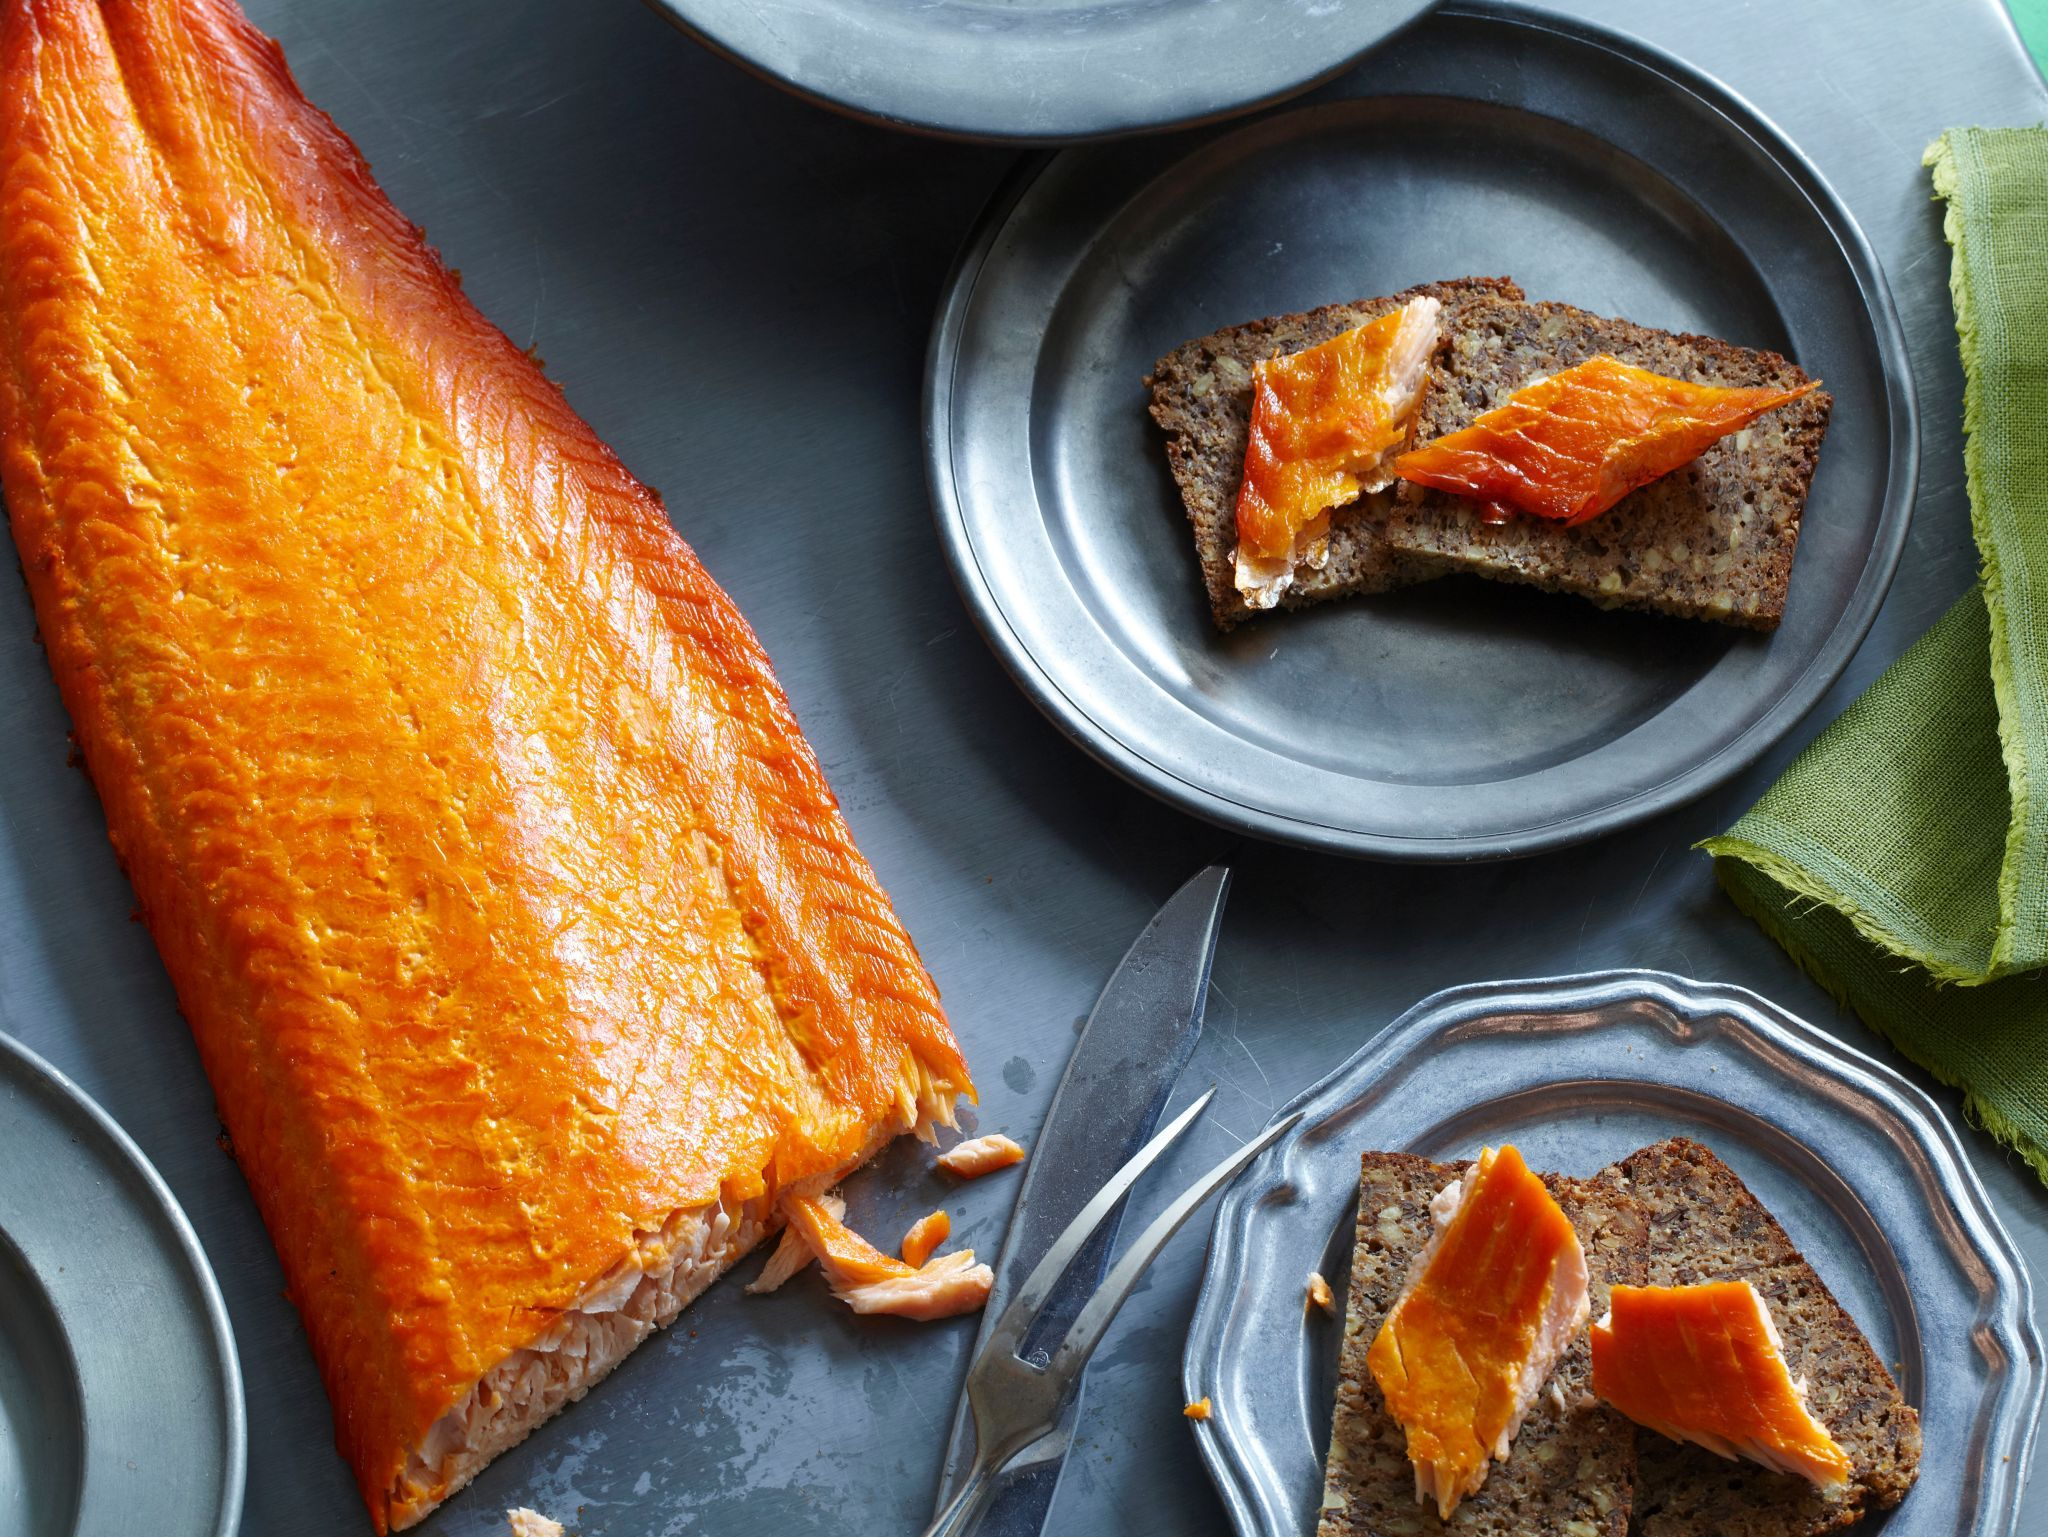 Smoked Salmon Recipe From Alton Brown Via Foodworkdon't Forget To Cut